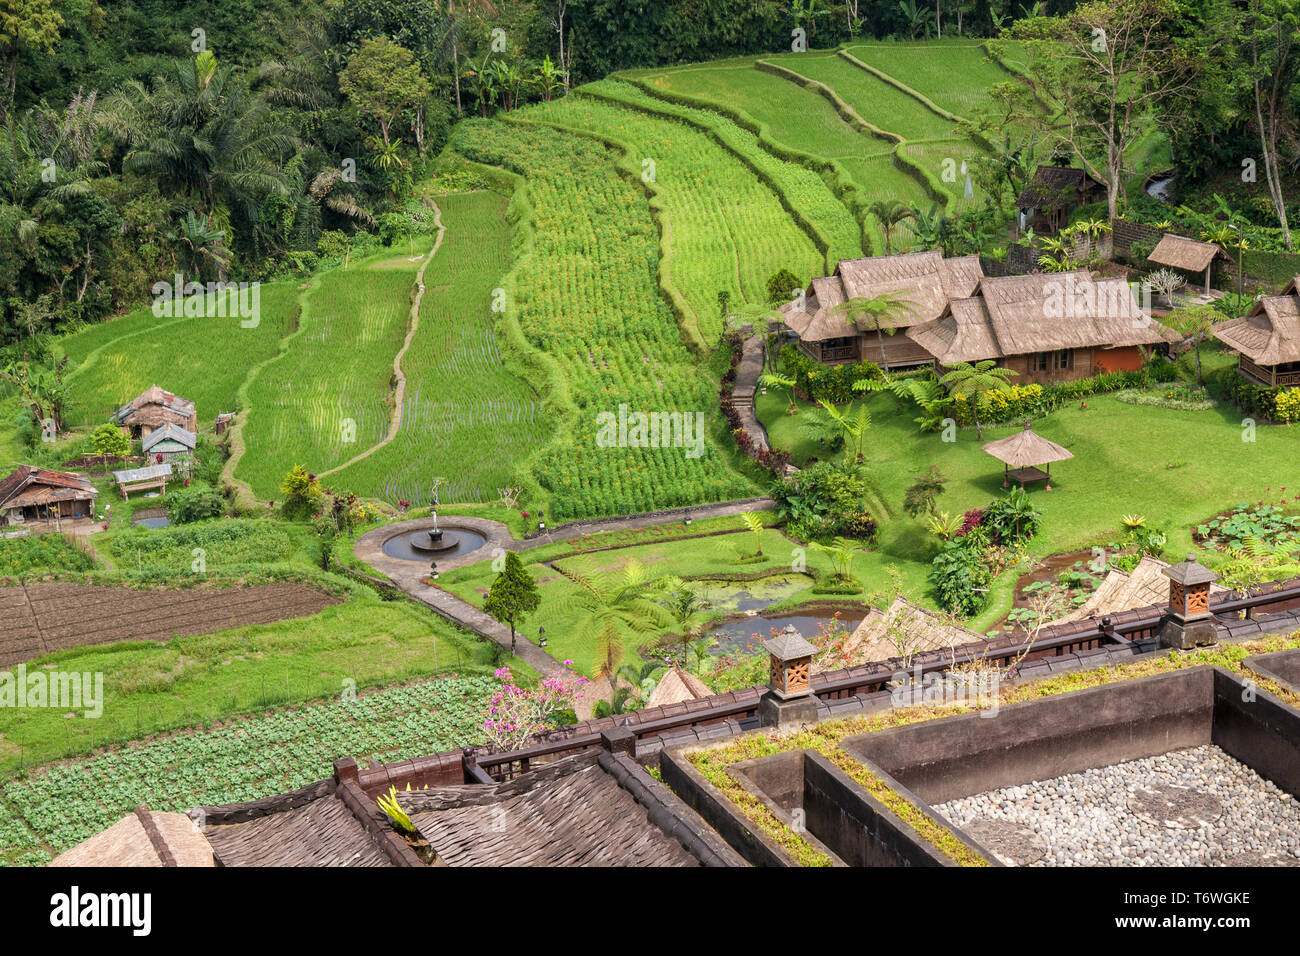 Rural Landscape Farm And Rice Fields In The Jungle Bali Indonesia Stock Photo Alamy